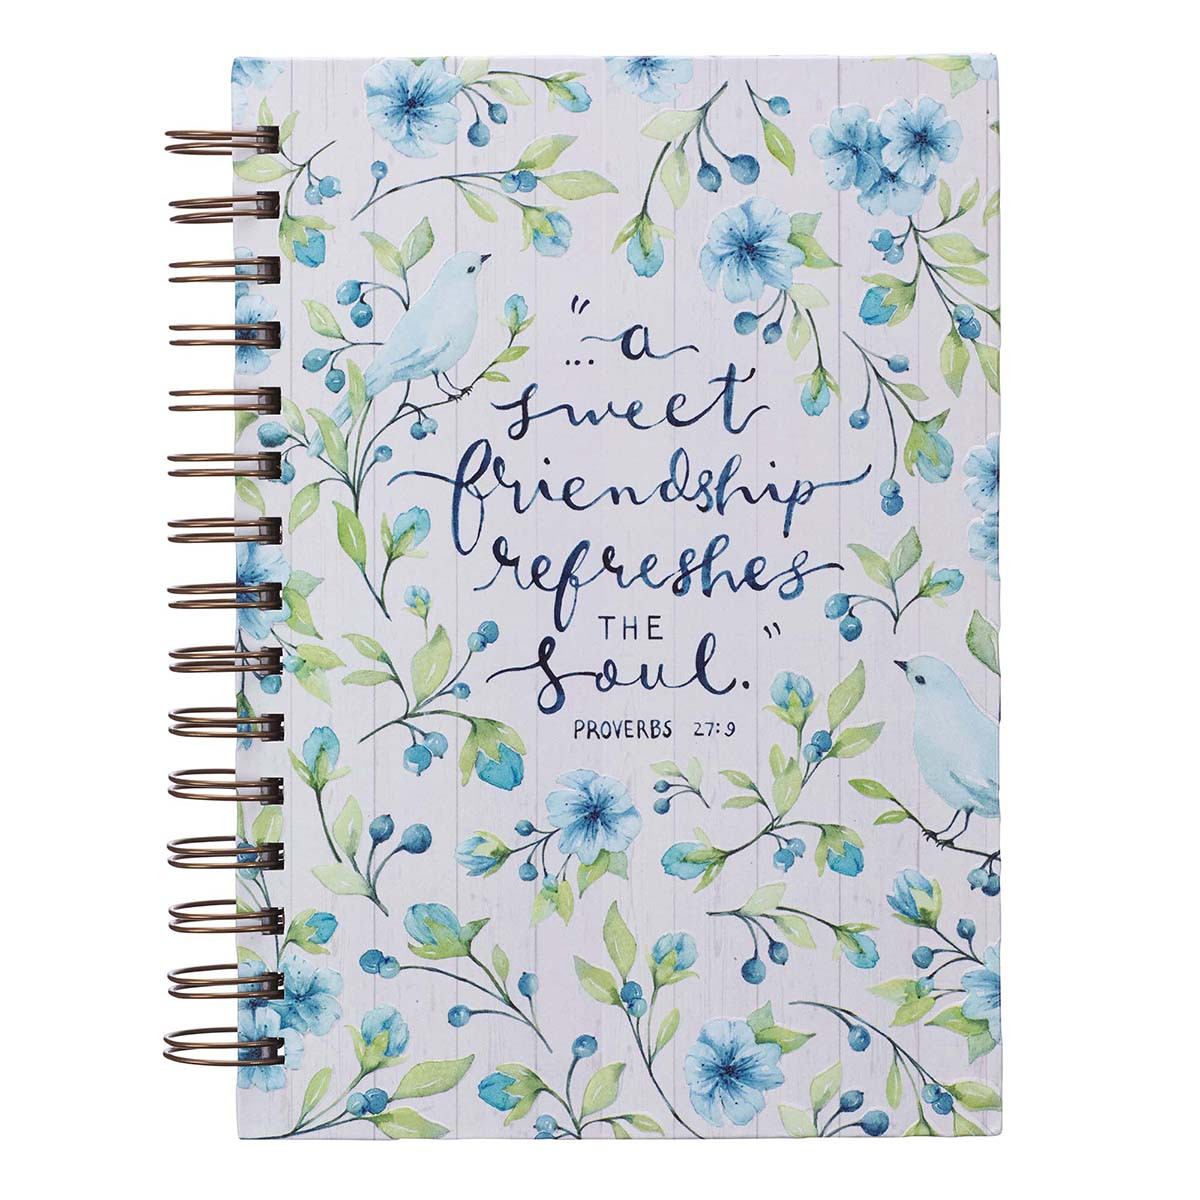 A Sweet Friendship Refreshes The Soul (Large Wirebound Journal)